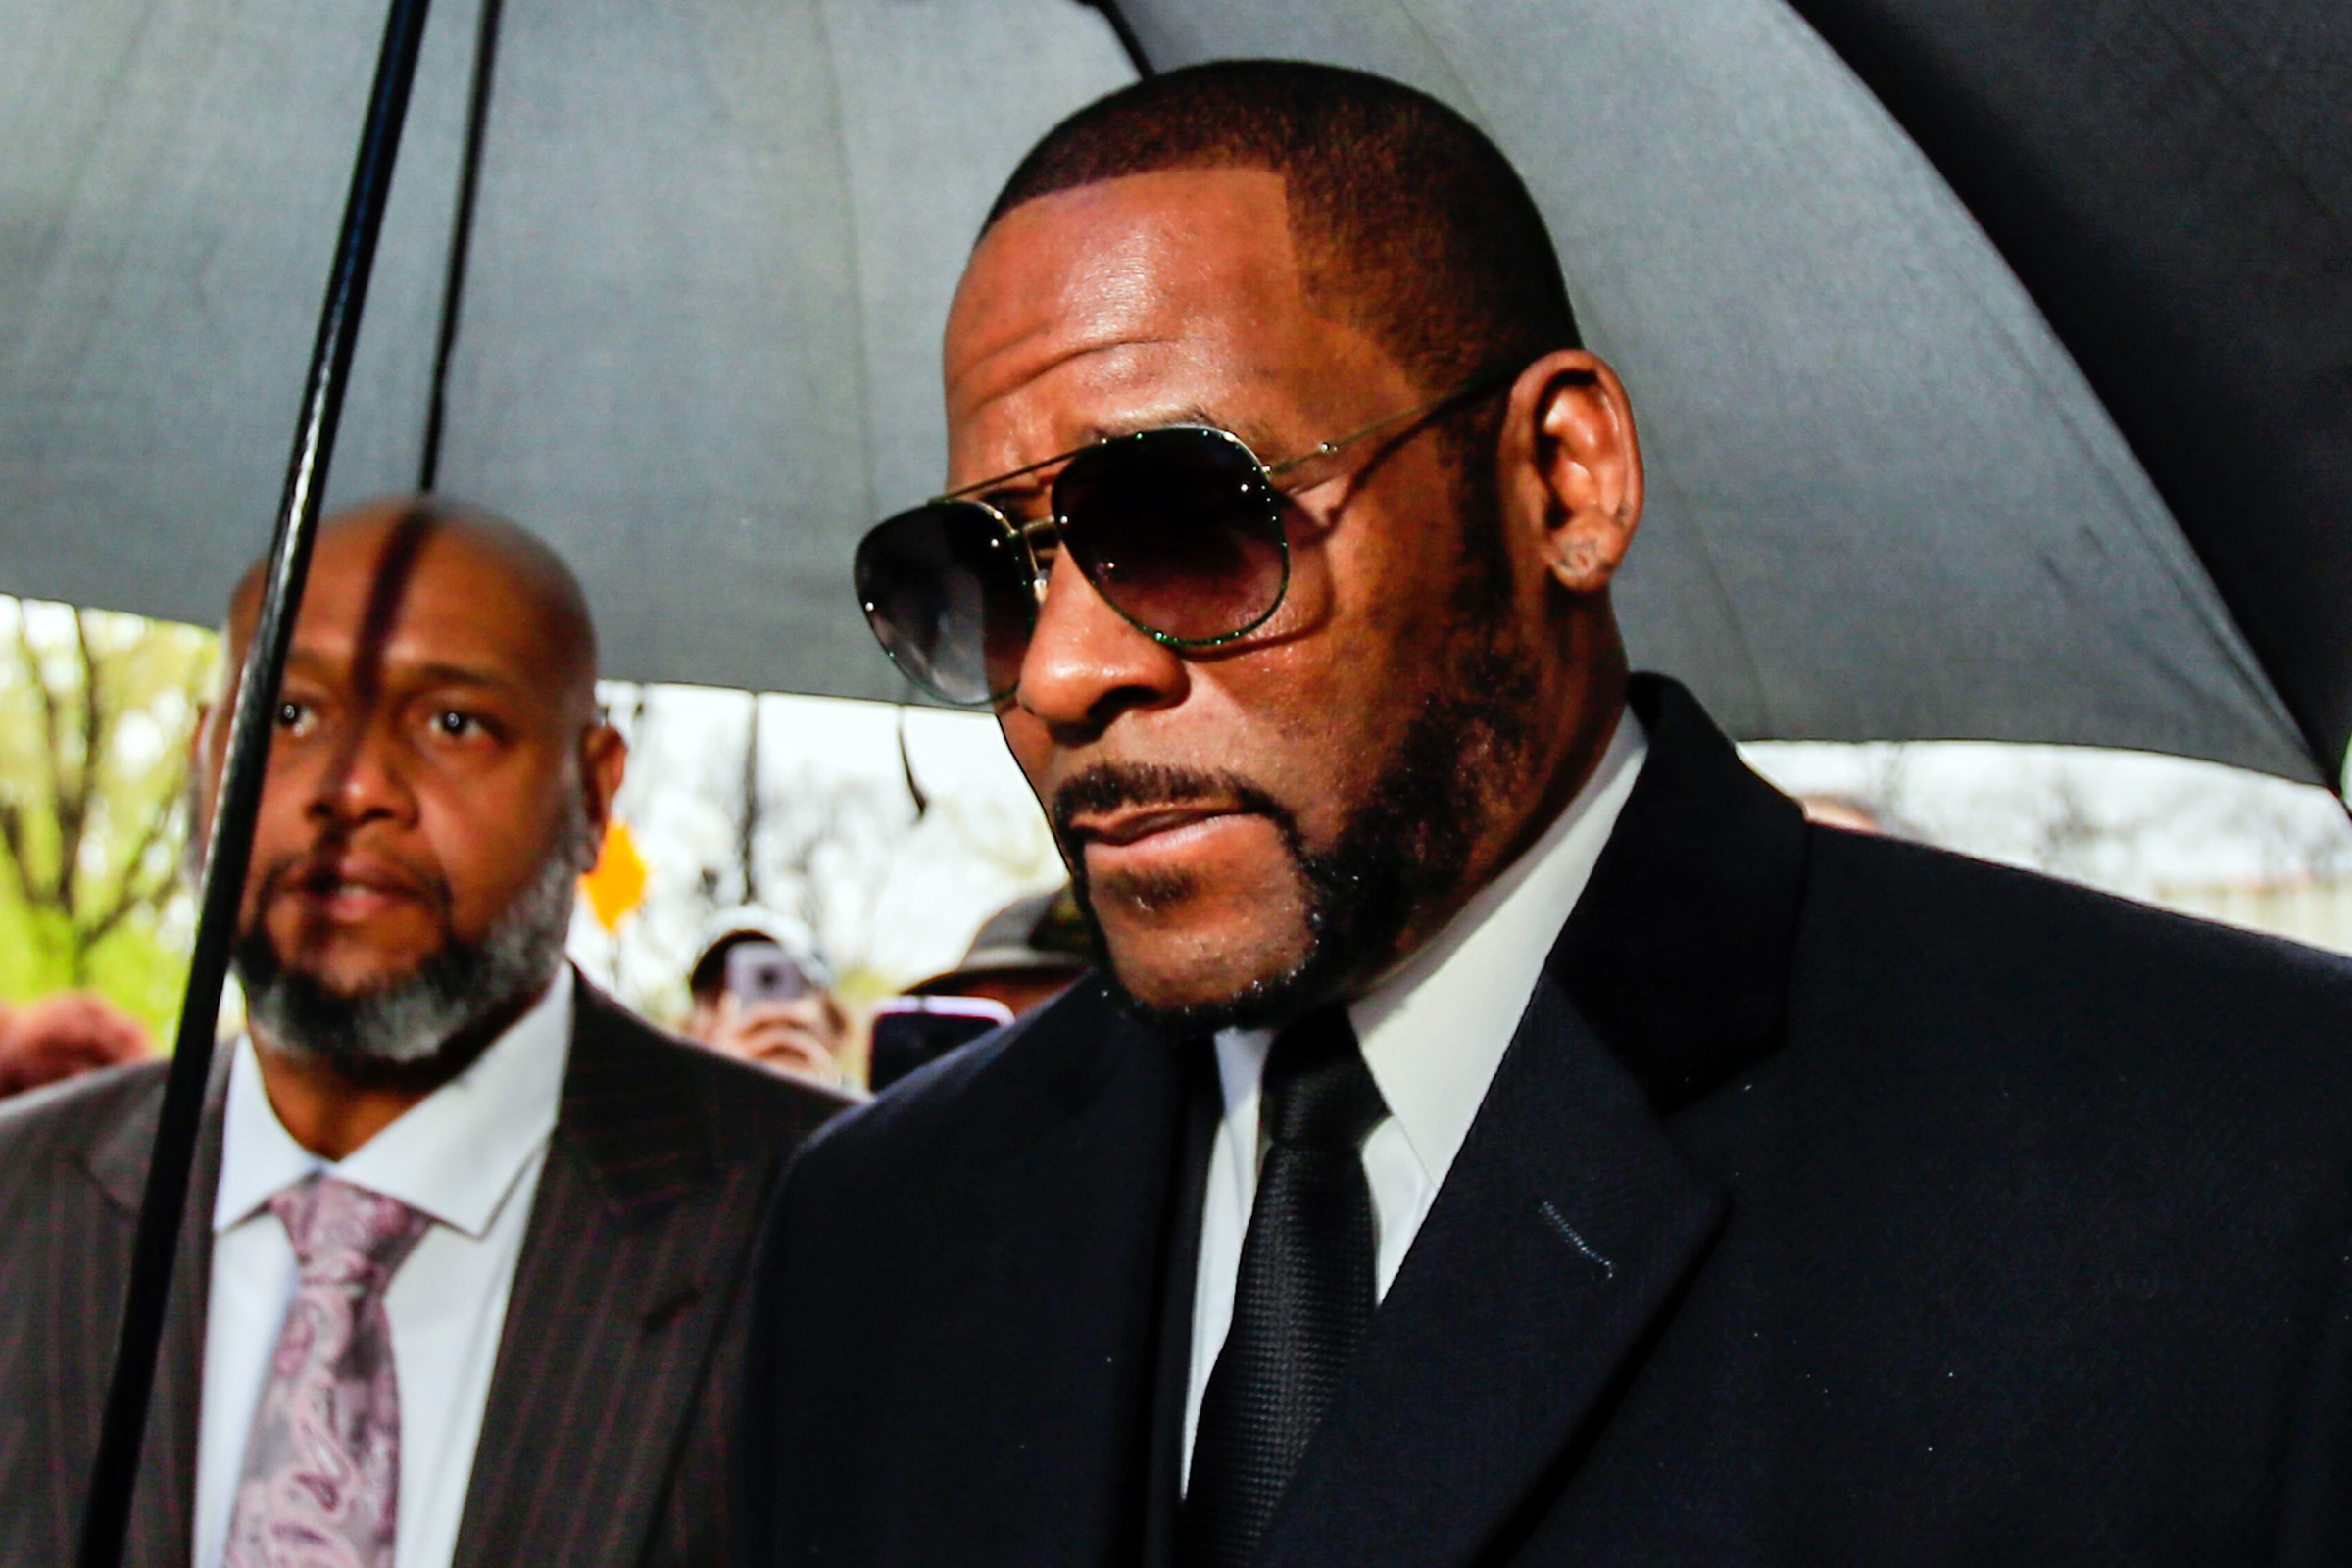 fb1ea5607287438b941b4d31bc7b7142 - R.Kelly's arrest warrant issued in Minnesota, currently in Chicago prison